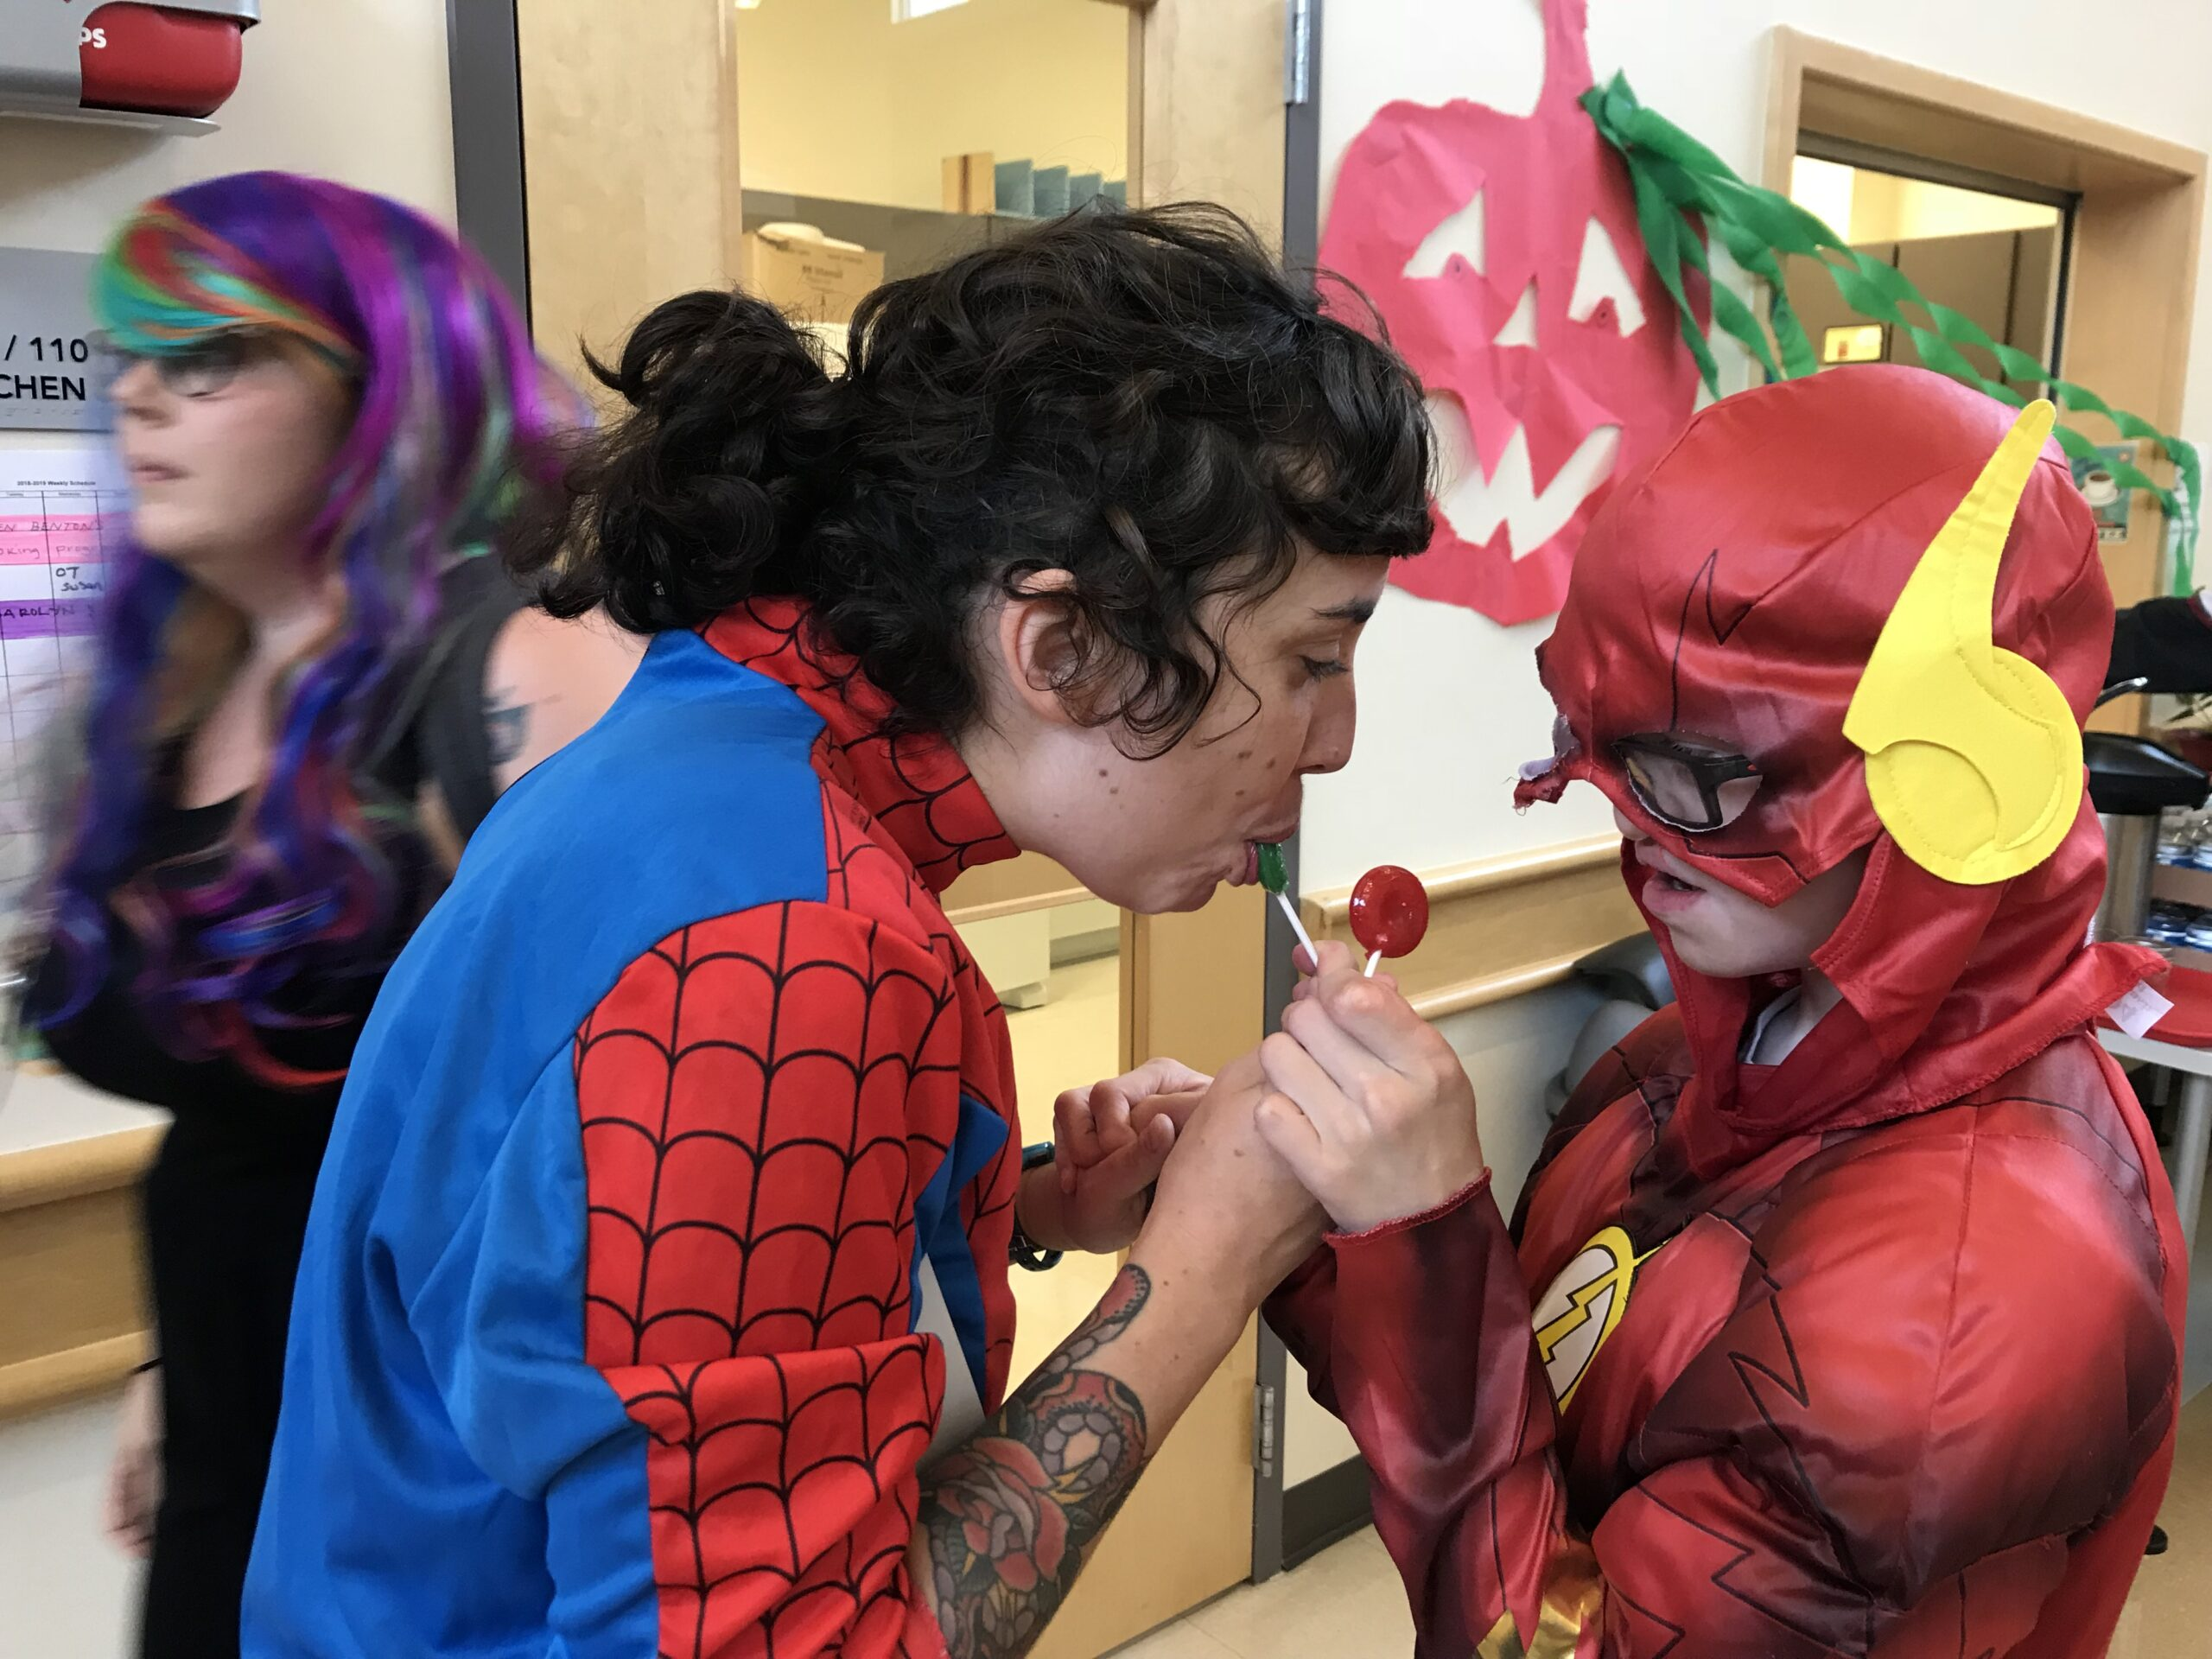 A teacher and young boy dressed in Halloween costumes share the experience of eating lollipops.